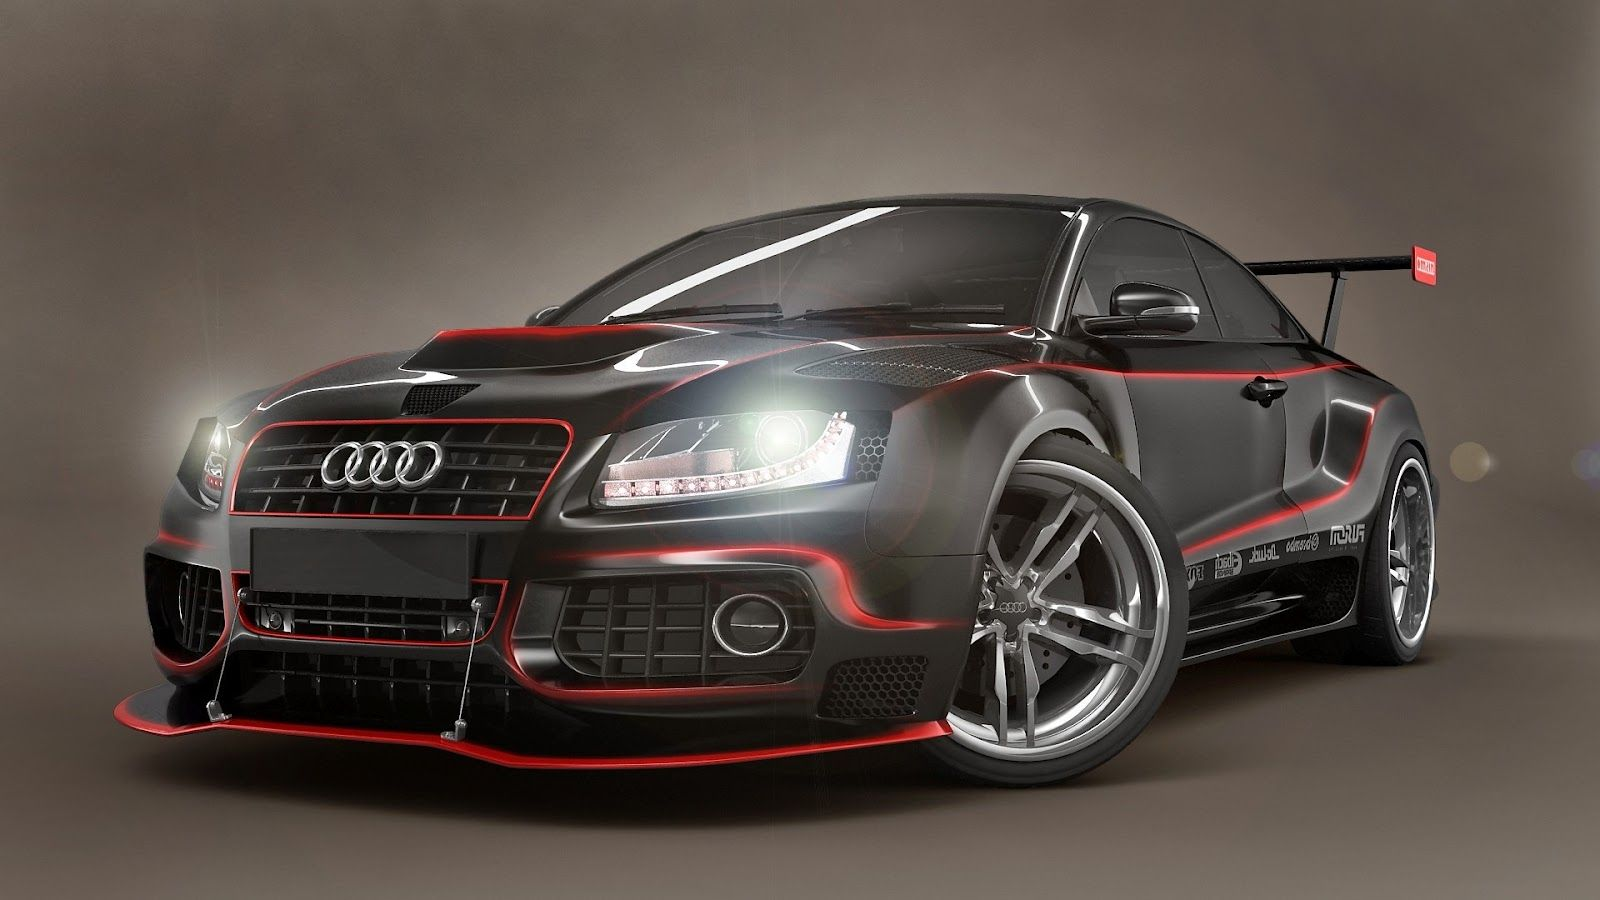 Body Kit Audi S5 Modified Body Kit Red Lines Hd Wallpaper Hd